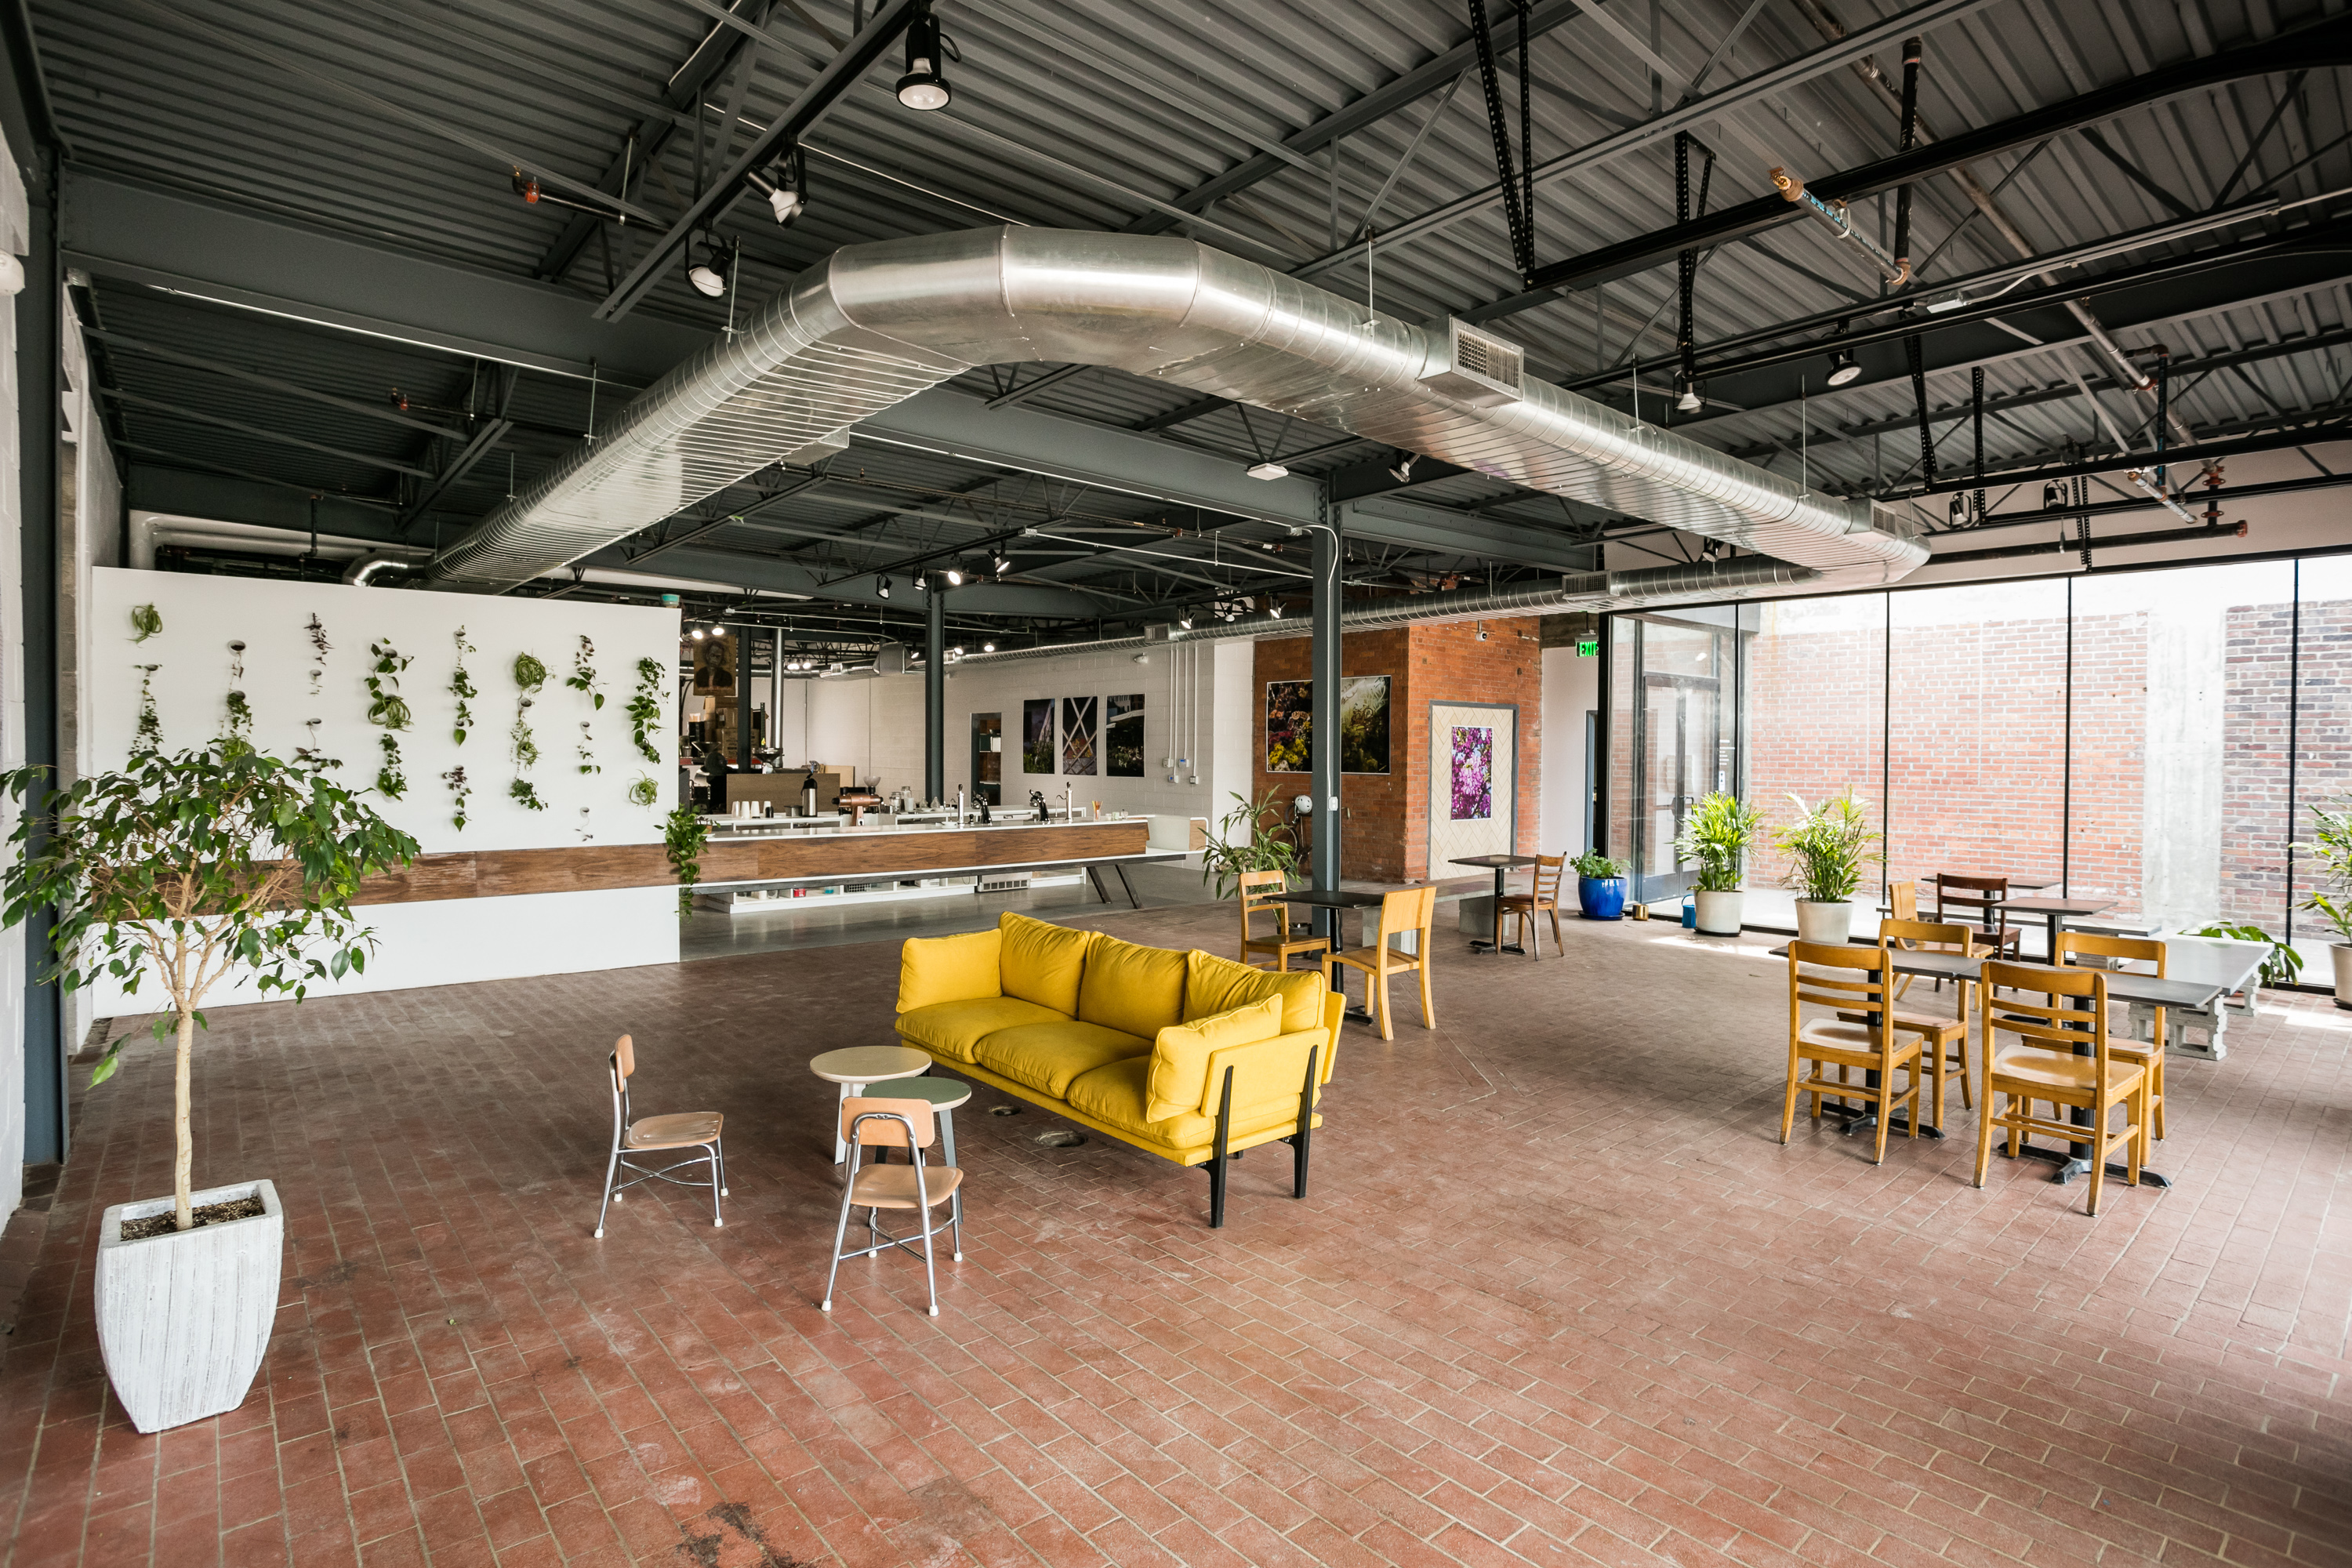 A yellow couch sits in the middle of the industrial space at Anthology Coffee. The room has large windows, plants, and brick floors.